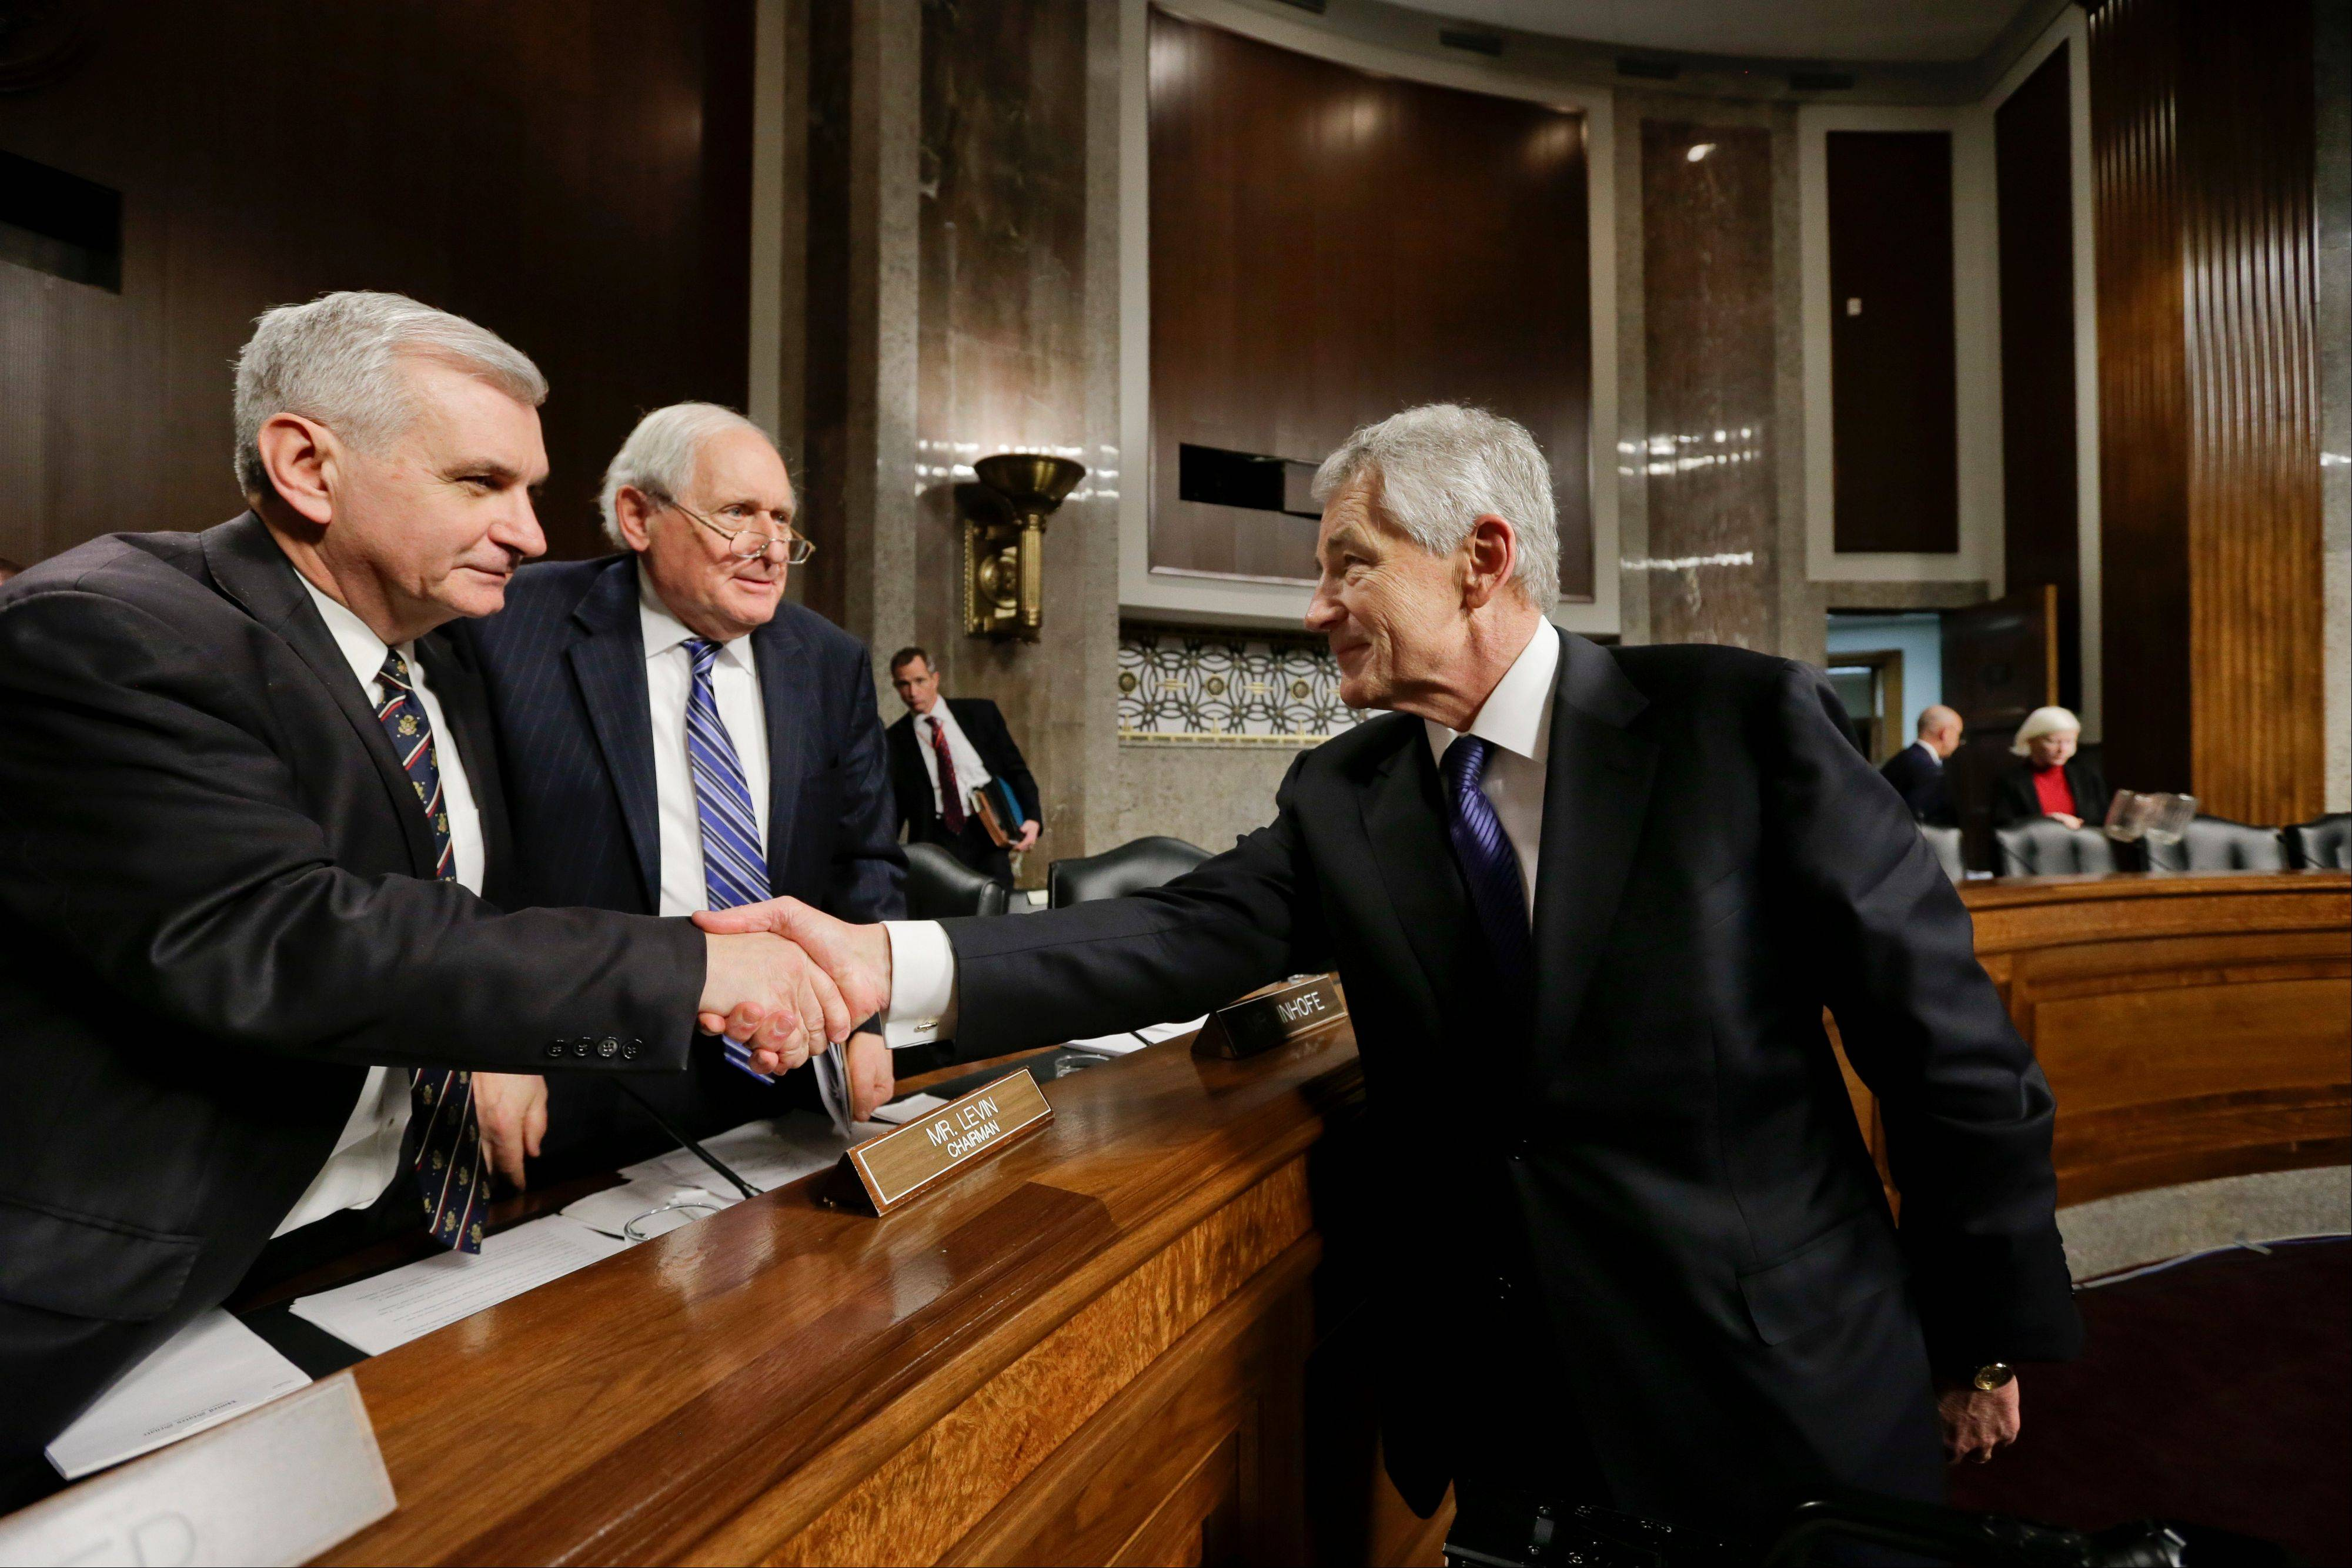 Chuck Hagel, right, President Obama�s nominee to become secretary of defense, shakes hands with Sen. Jack Reed, D-R.I., far left, and Senate Armed Services Committee Chairman Carl Levin, D-Mich., second from left, at the end of his confirmation hearing, on Capitol Hill in Washington, Thursday, Jan. 31, 2013.